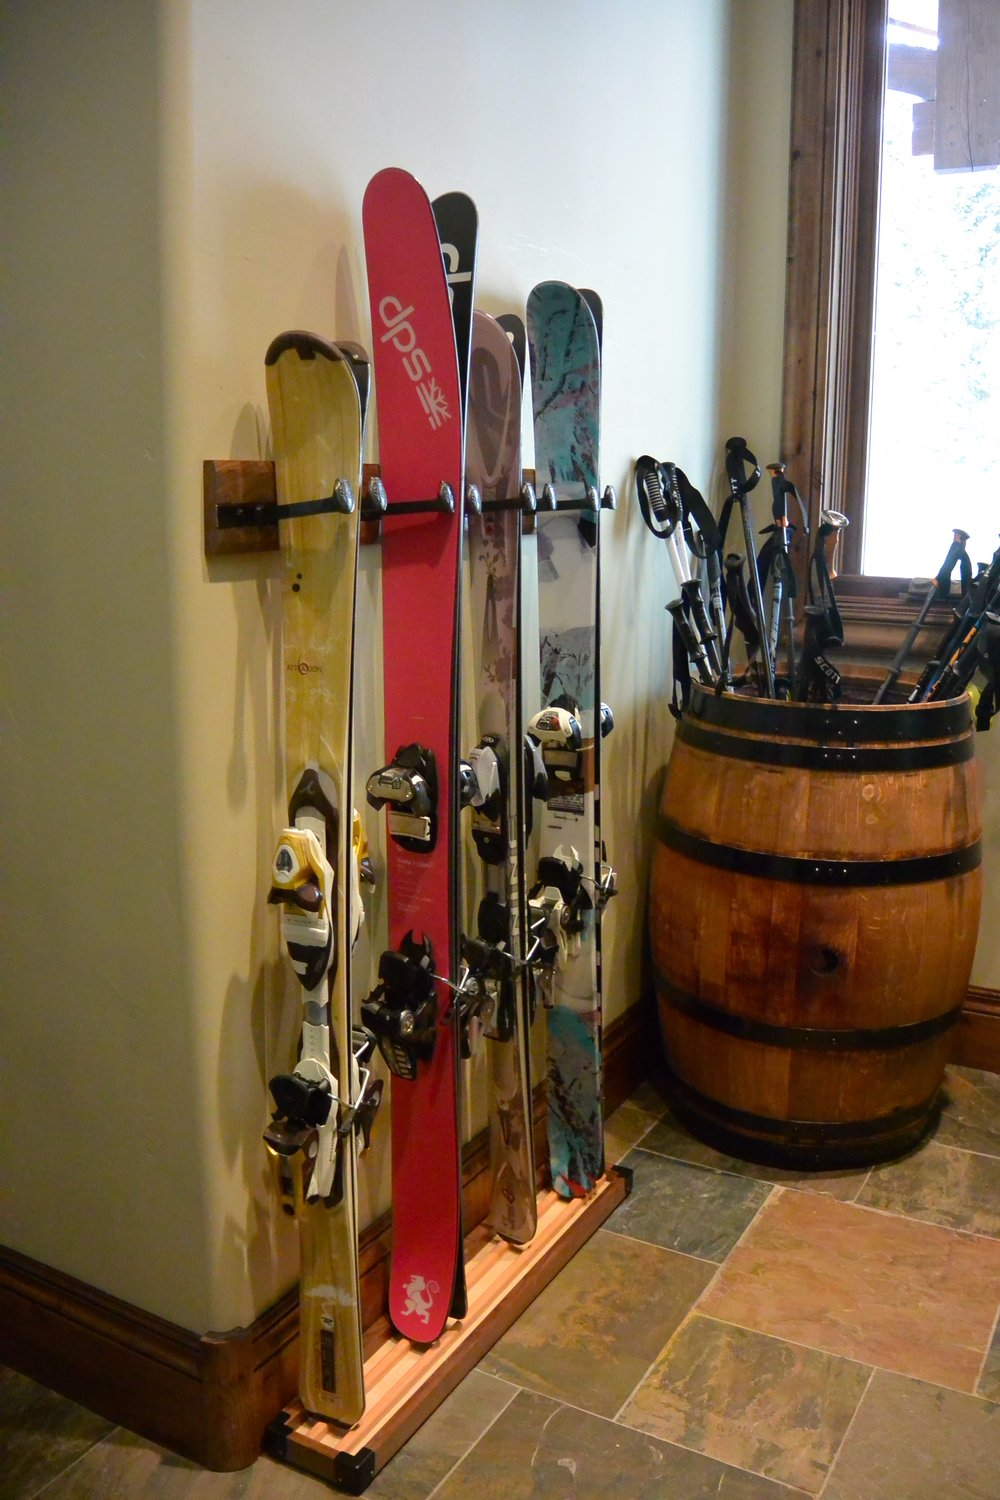 Your skis look great and your floors are dry!